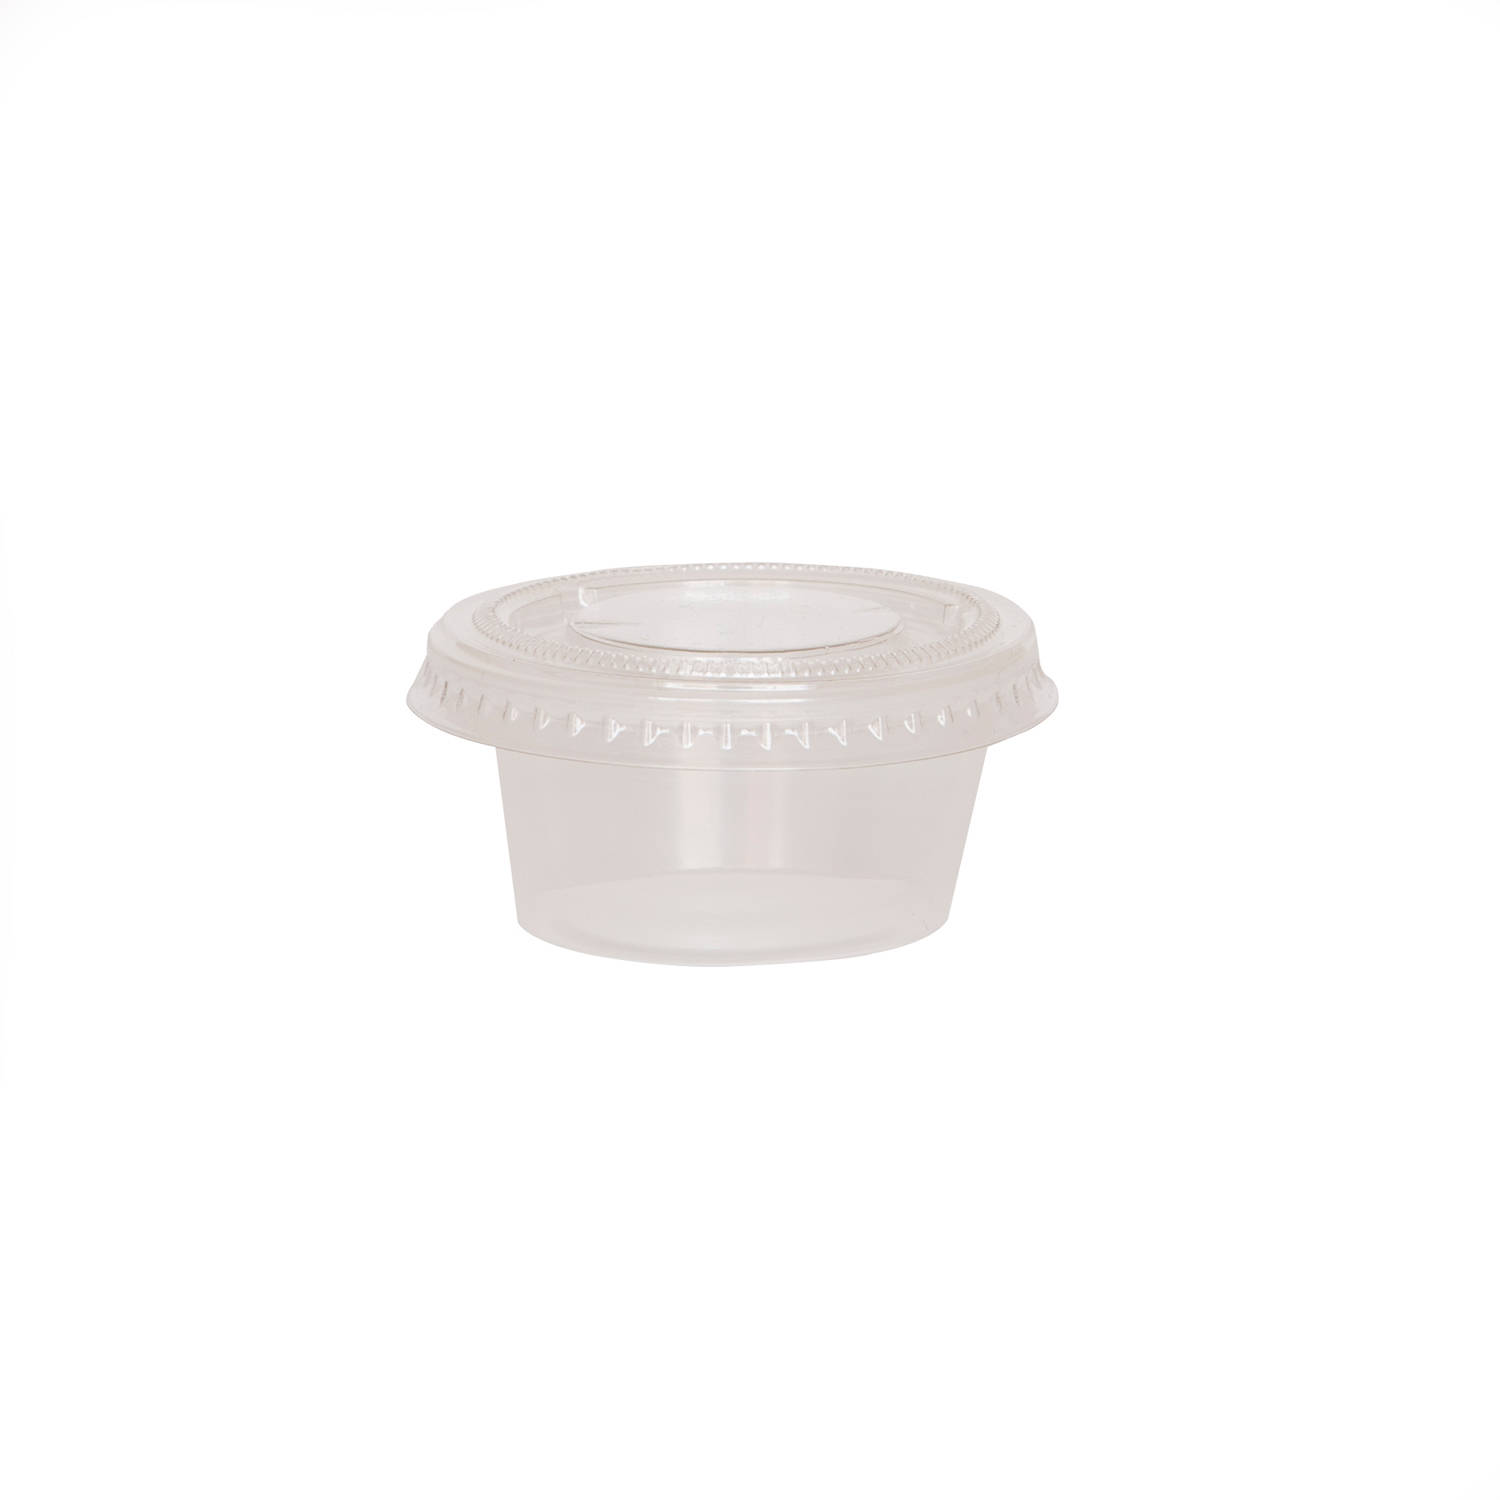 Clear Plastic Gelatin Shot Cups with Lids 25ct. Price  sc 1 st  Walmart & Clear Plastic Plates